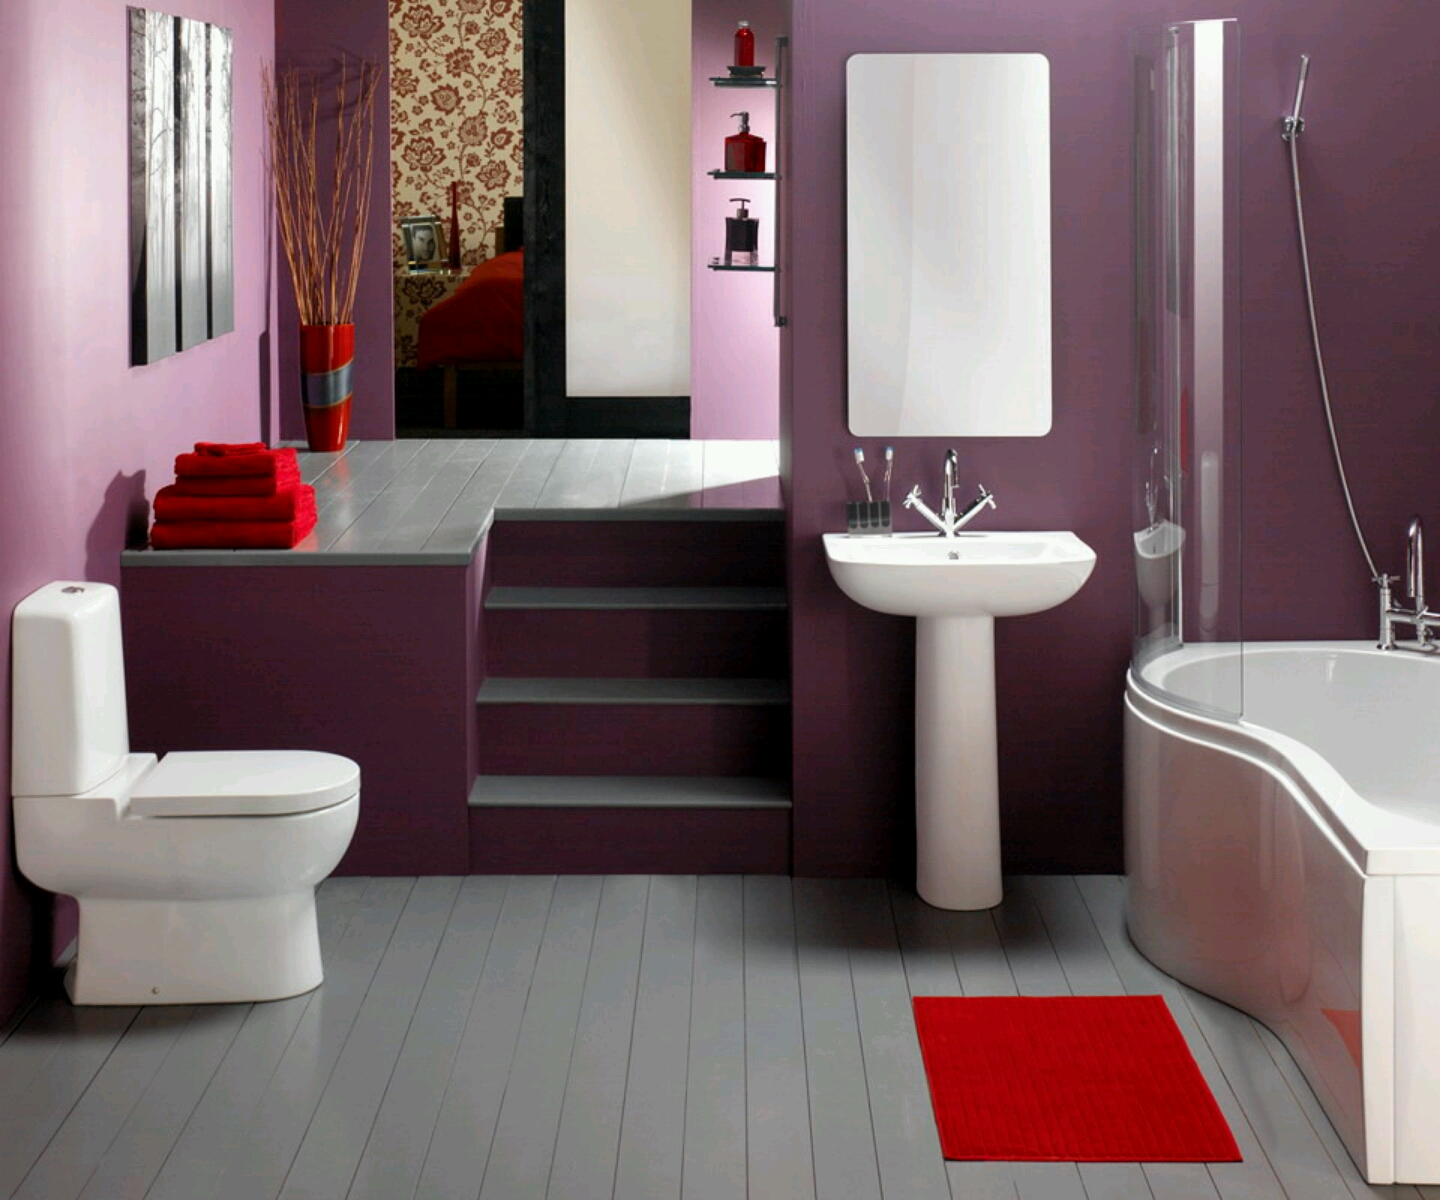 New home designs latest luxury modern bathrooms designs decoration ideas - Modern bathroom decorating ideas ...